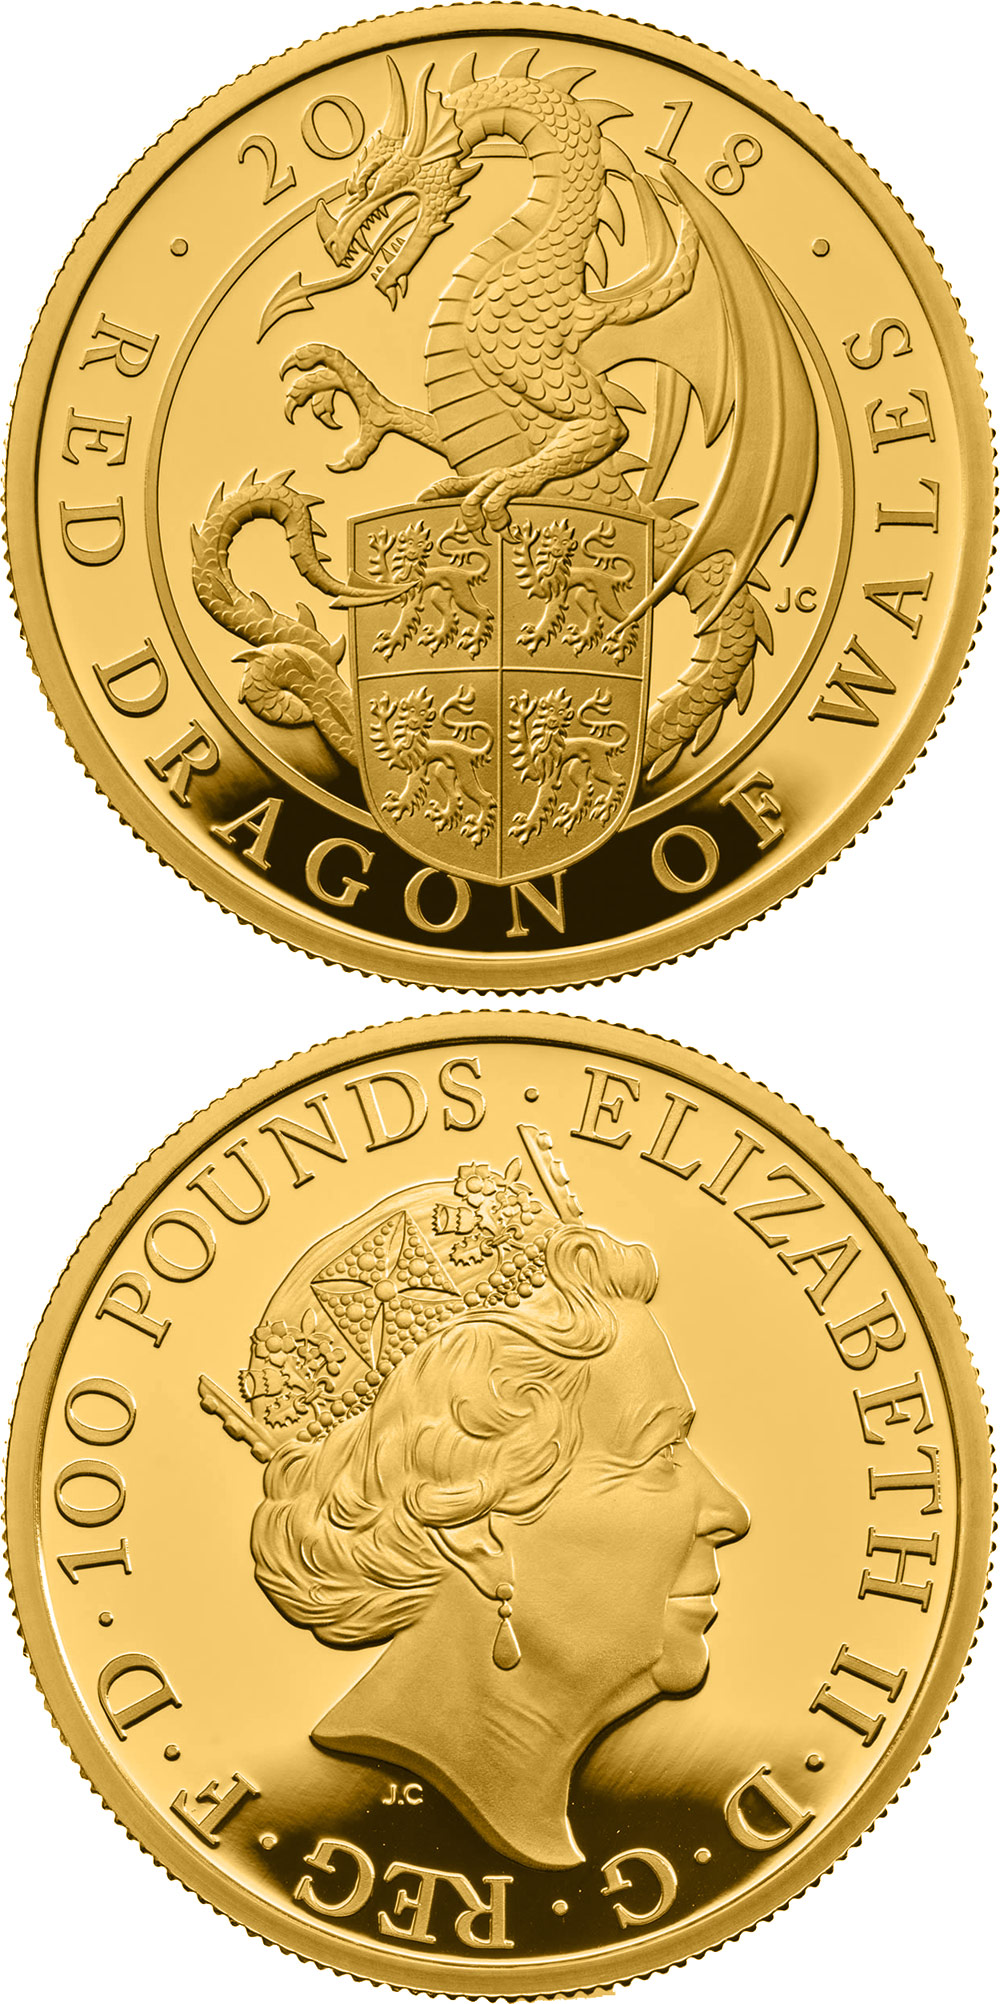 Image of 100 pounds coin - The Red Dragon of Wales | United Kingdom 2018.  The Gold coin is of Proof quality.